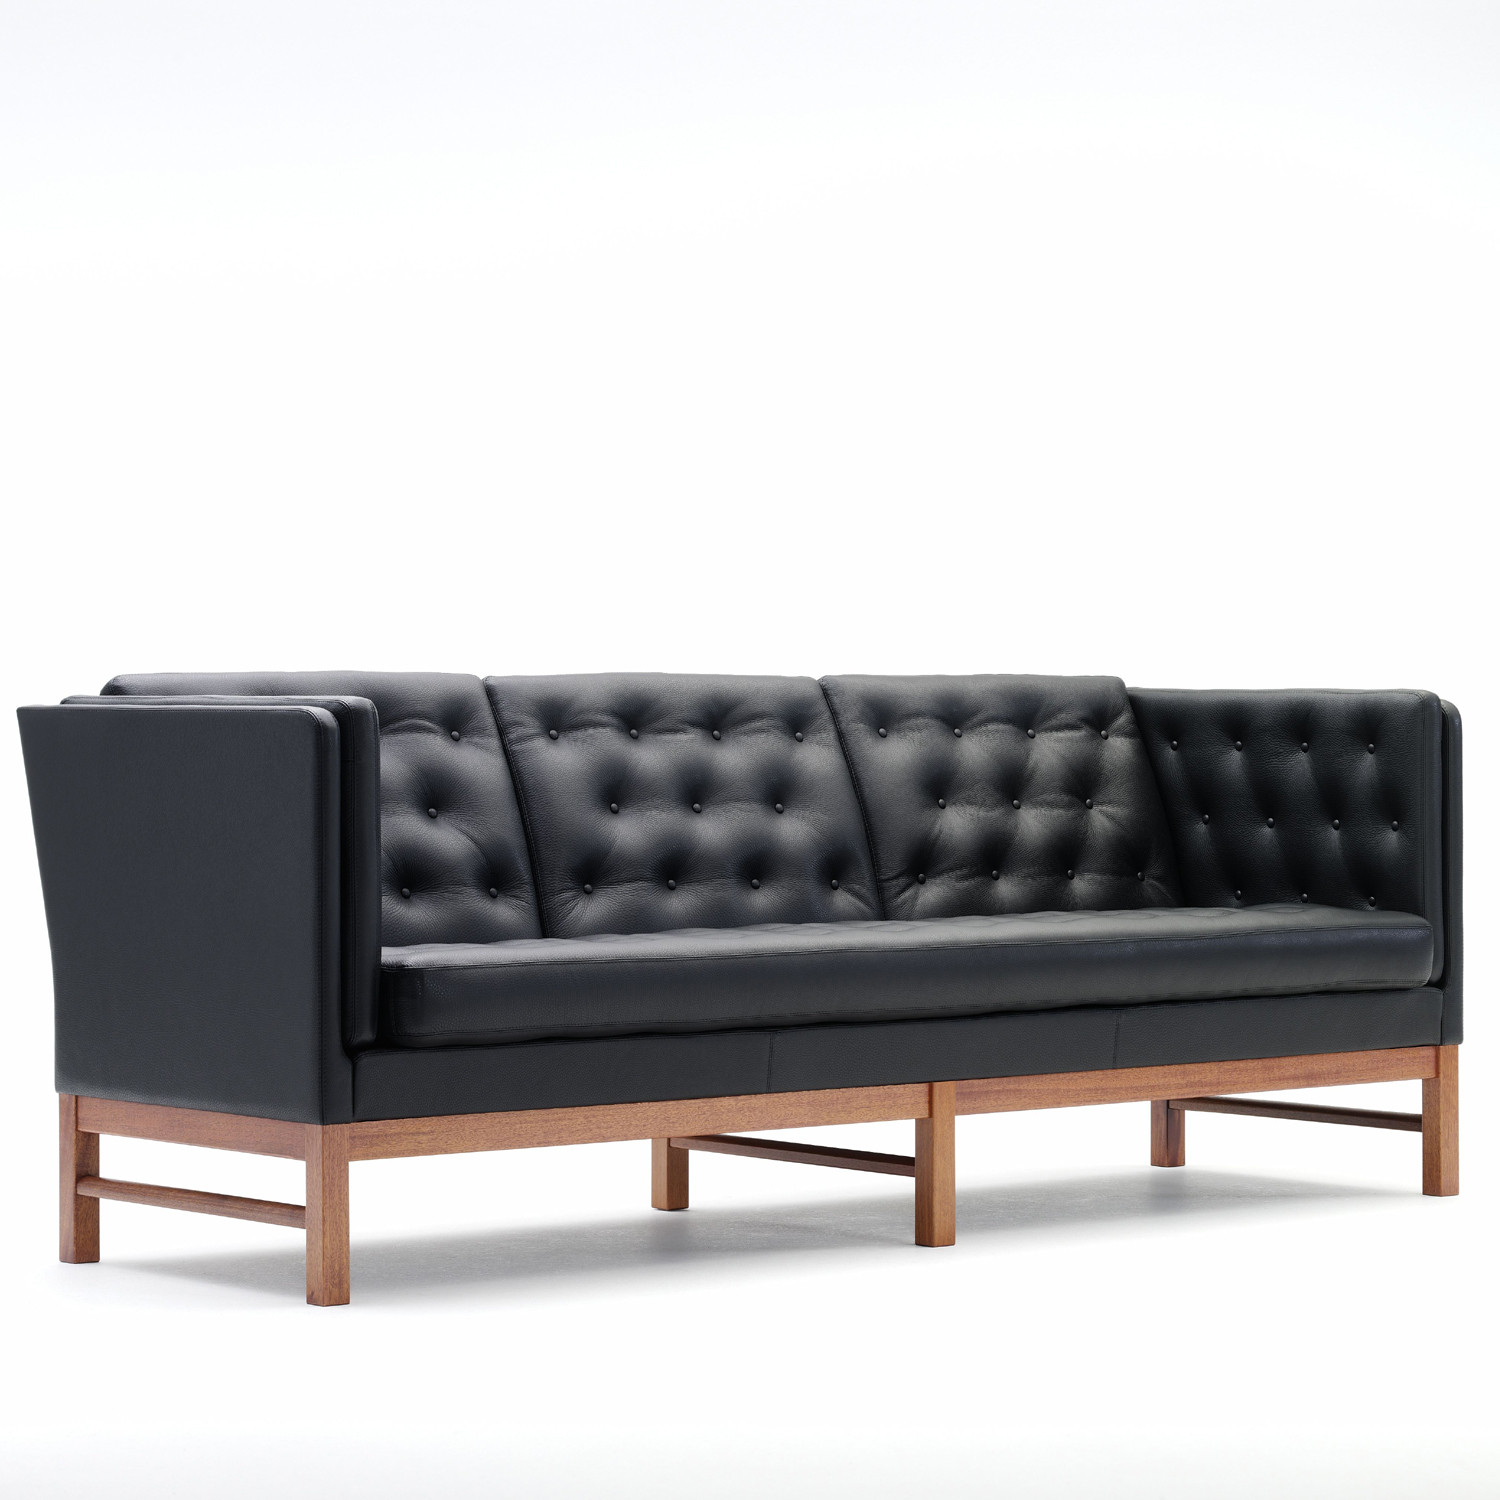 EJ 315 Sofa Three Seater